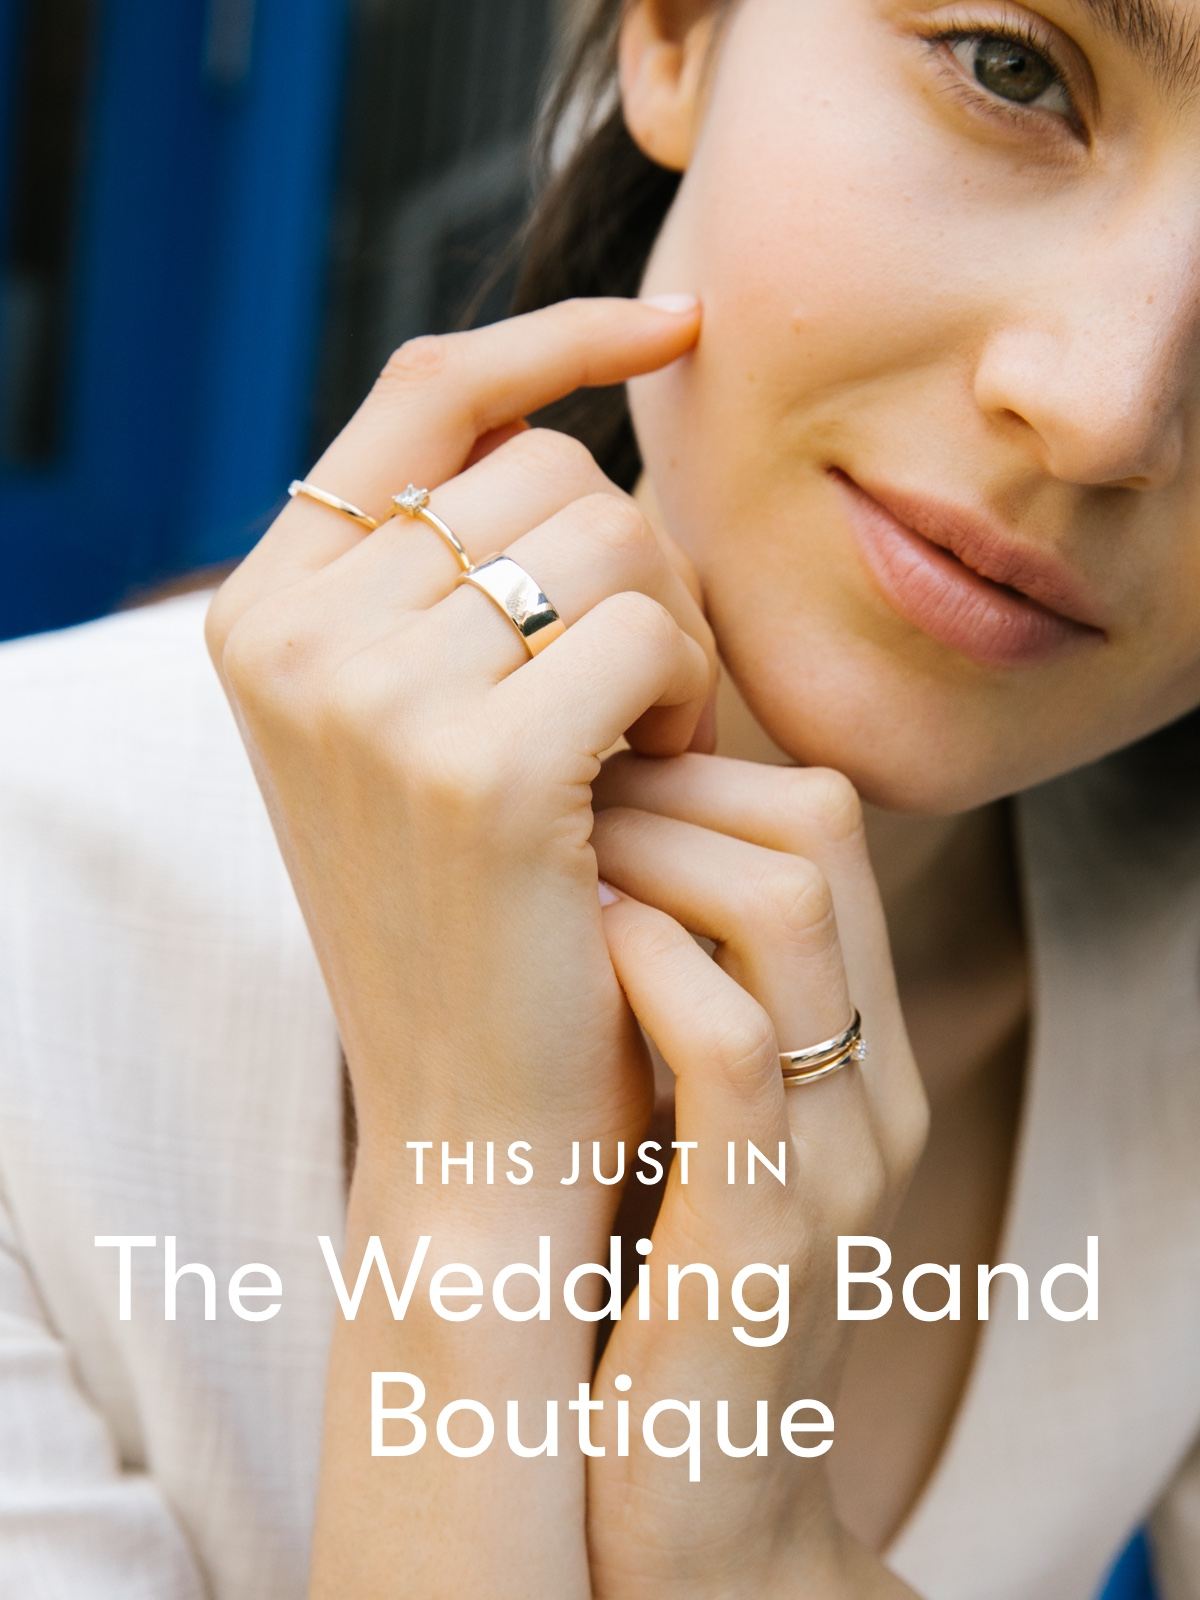 This Just In: The Wedding Band Boutique